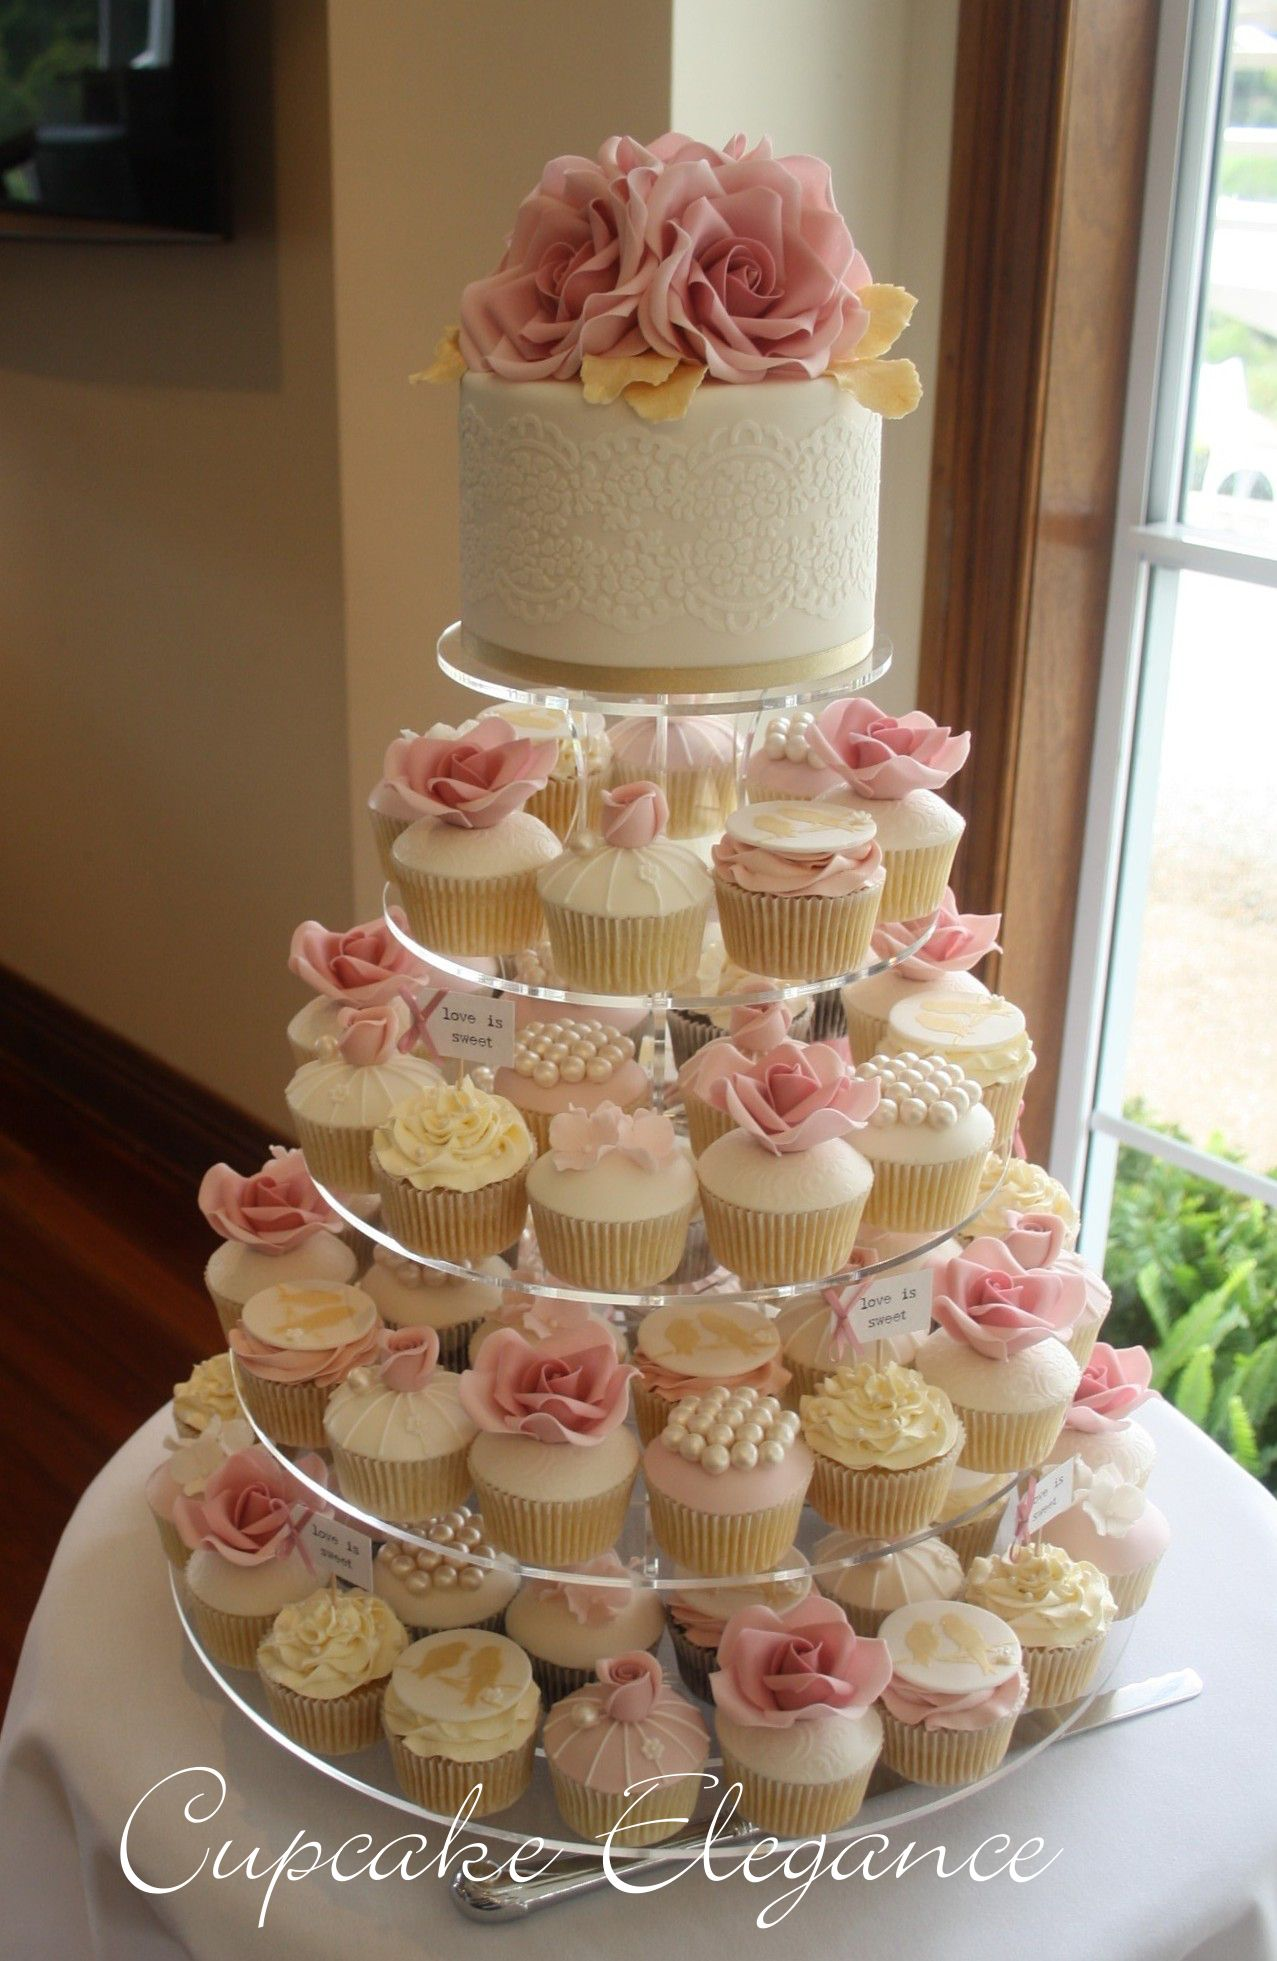 Wedding Cupcakes Make The Perfect Wedding Bonbonniere